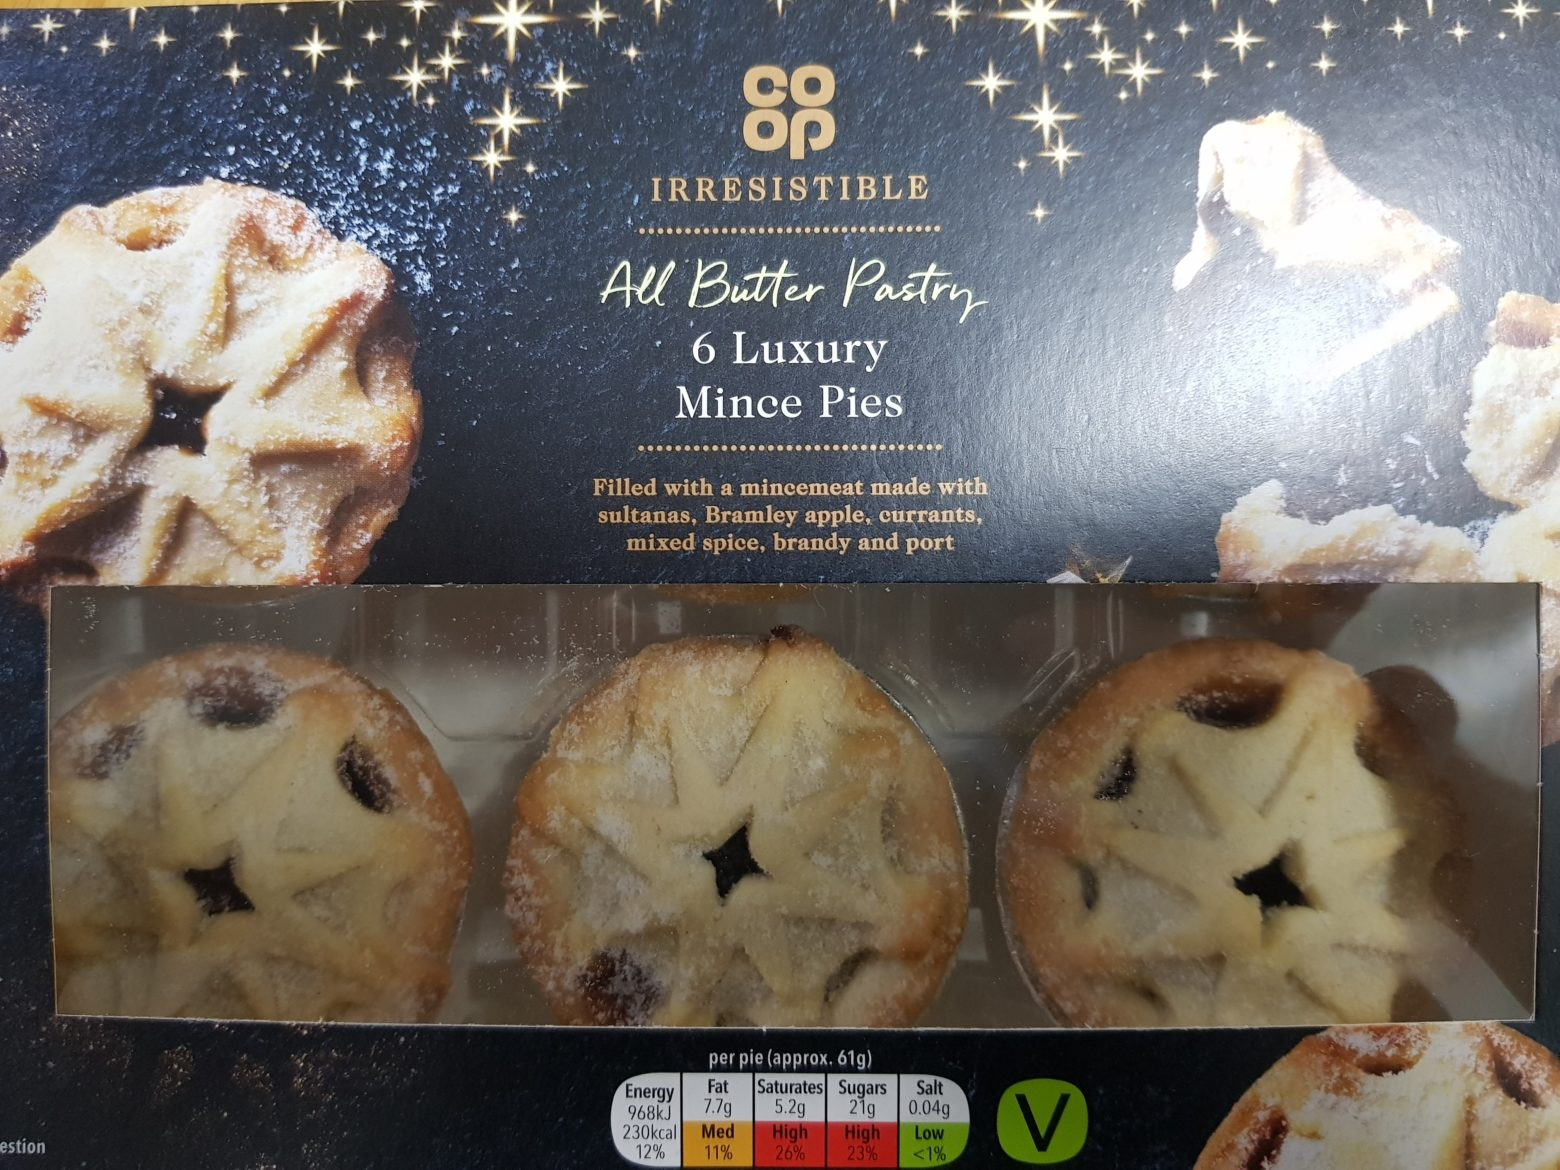 Co-op All Butter Pastry Luxury Mince Pie Review